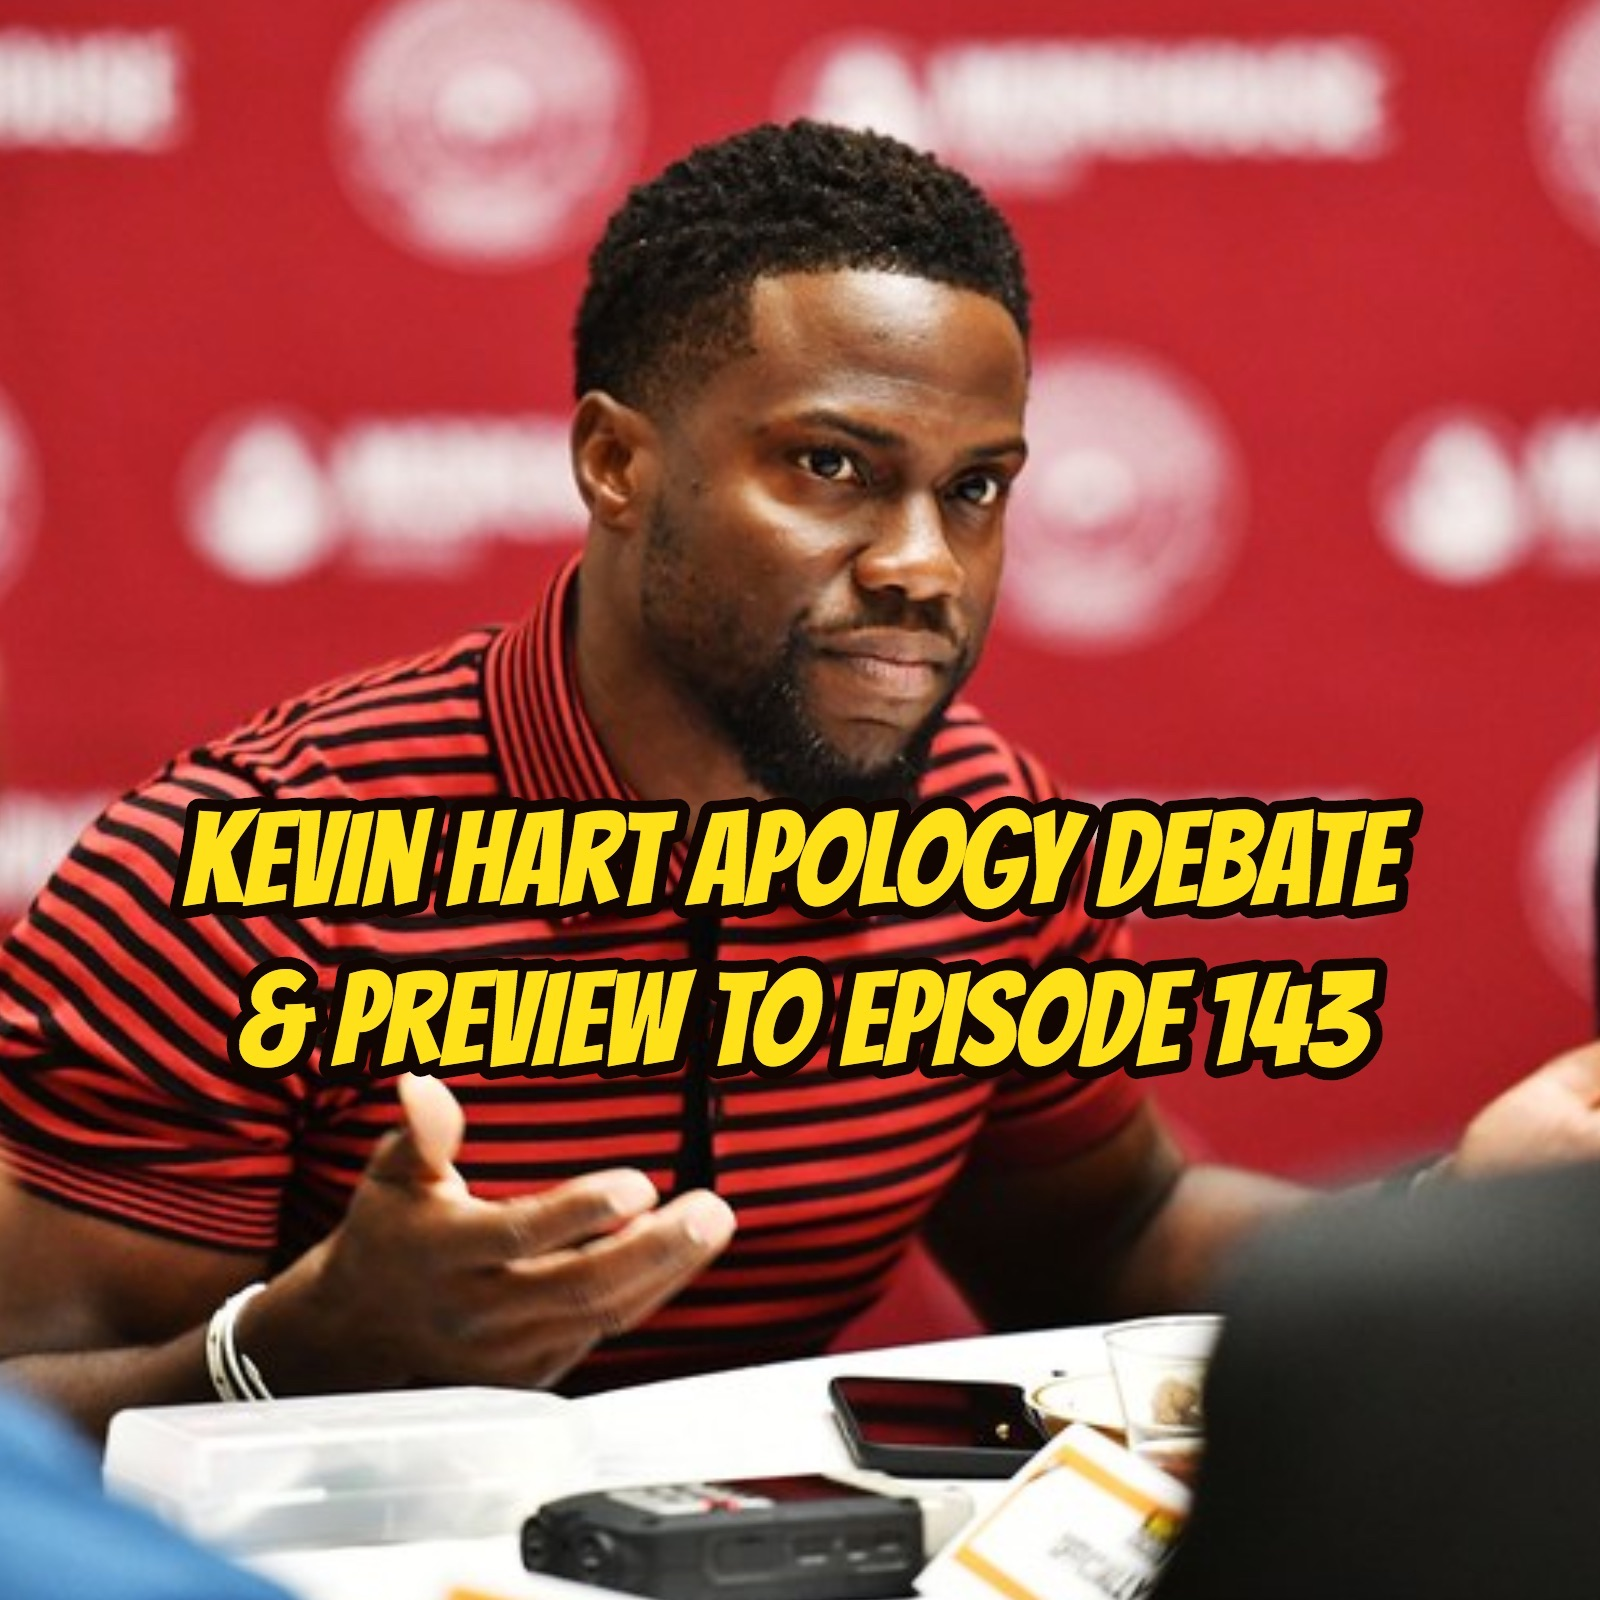 Kevin Hart Apology Debate & Preview to Episode 143